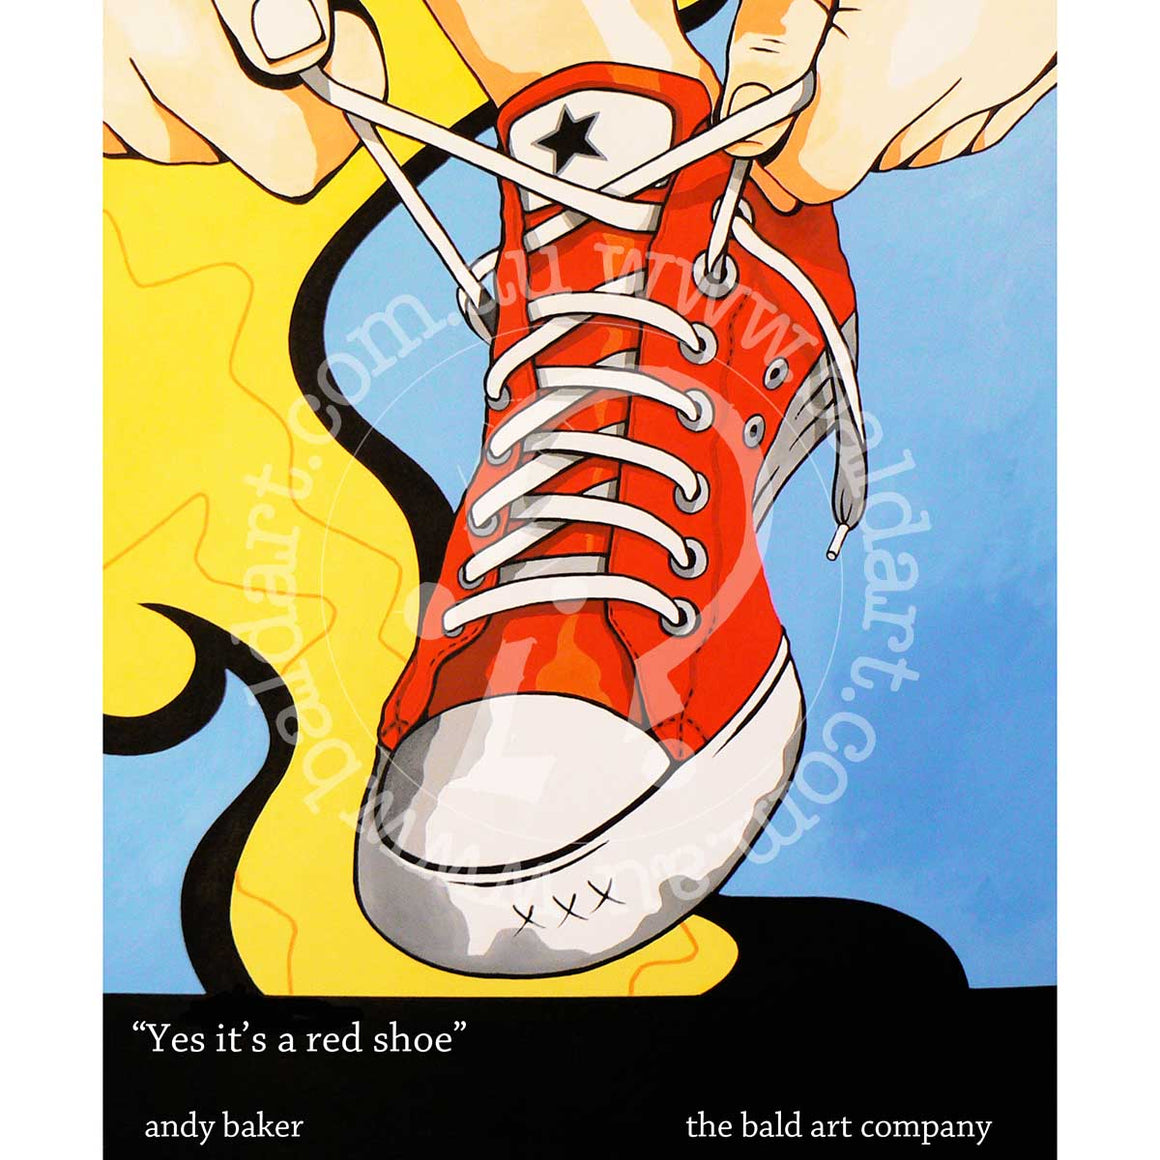 converse sneaker artwork pop art style by andy baker of bald art